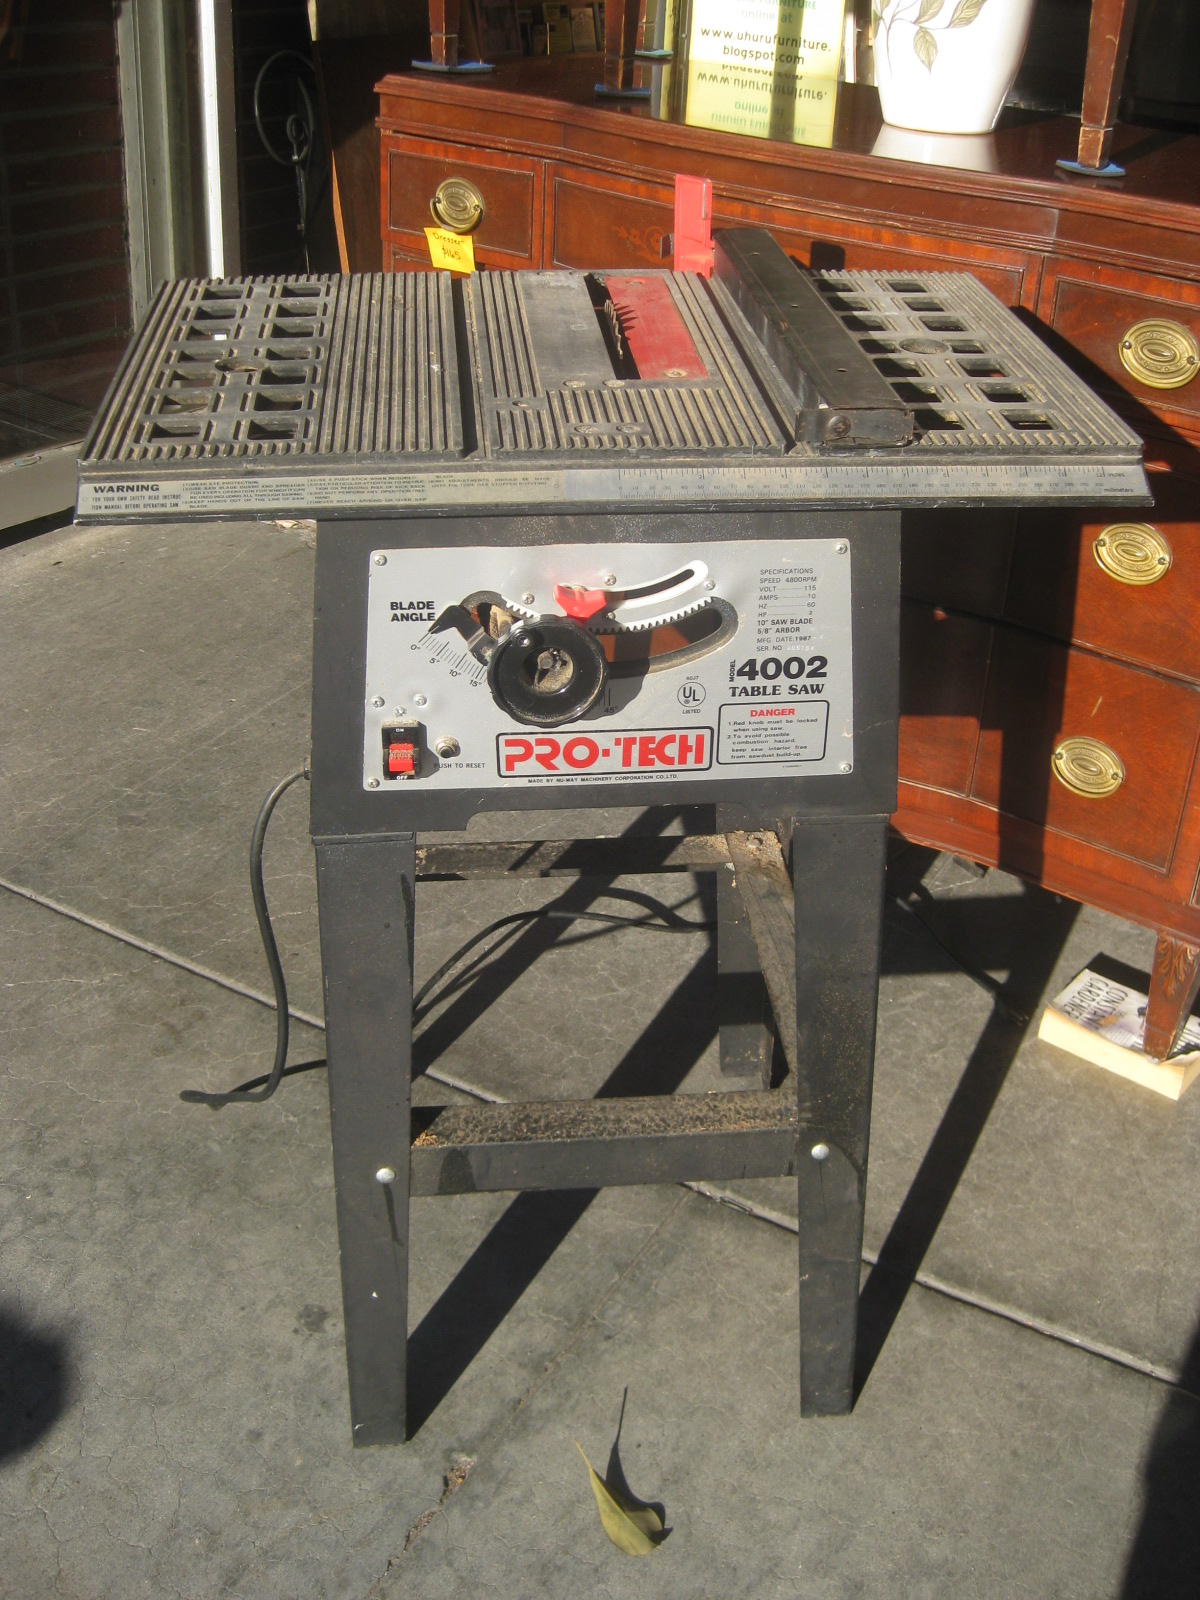 Uhuru Furniture Collectibles Sold Pro Tech 4002 Table Saw 60: pro tech table saw